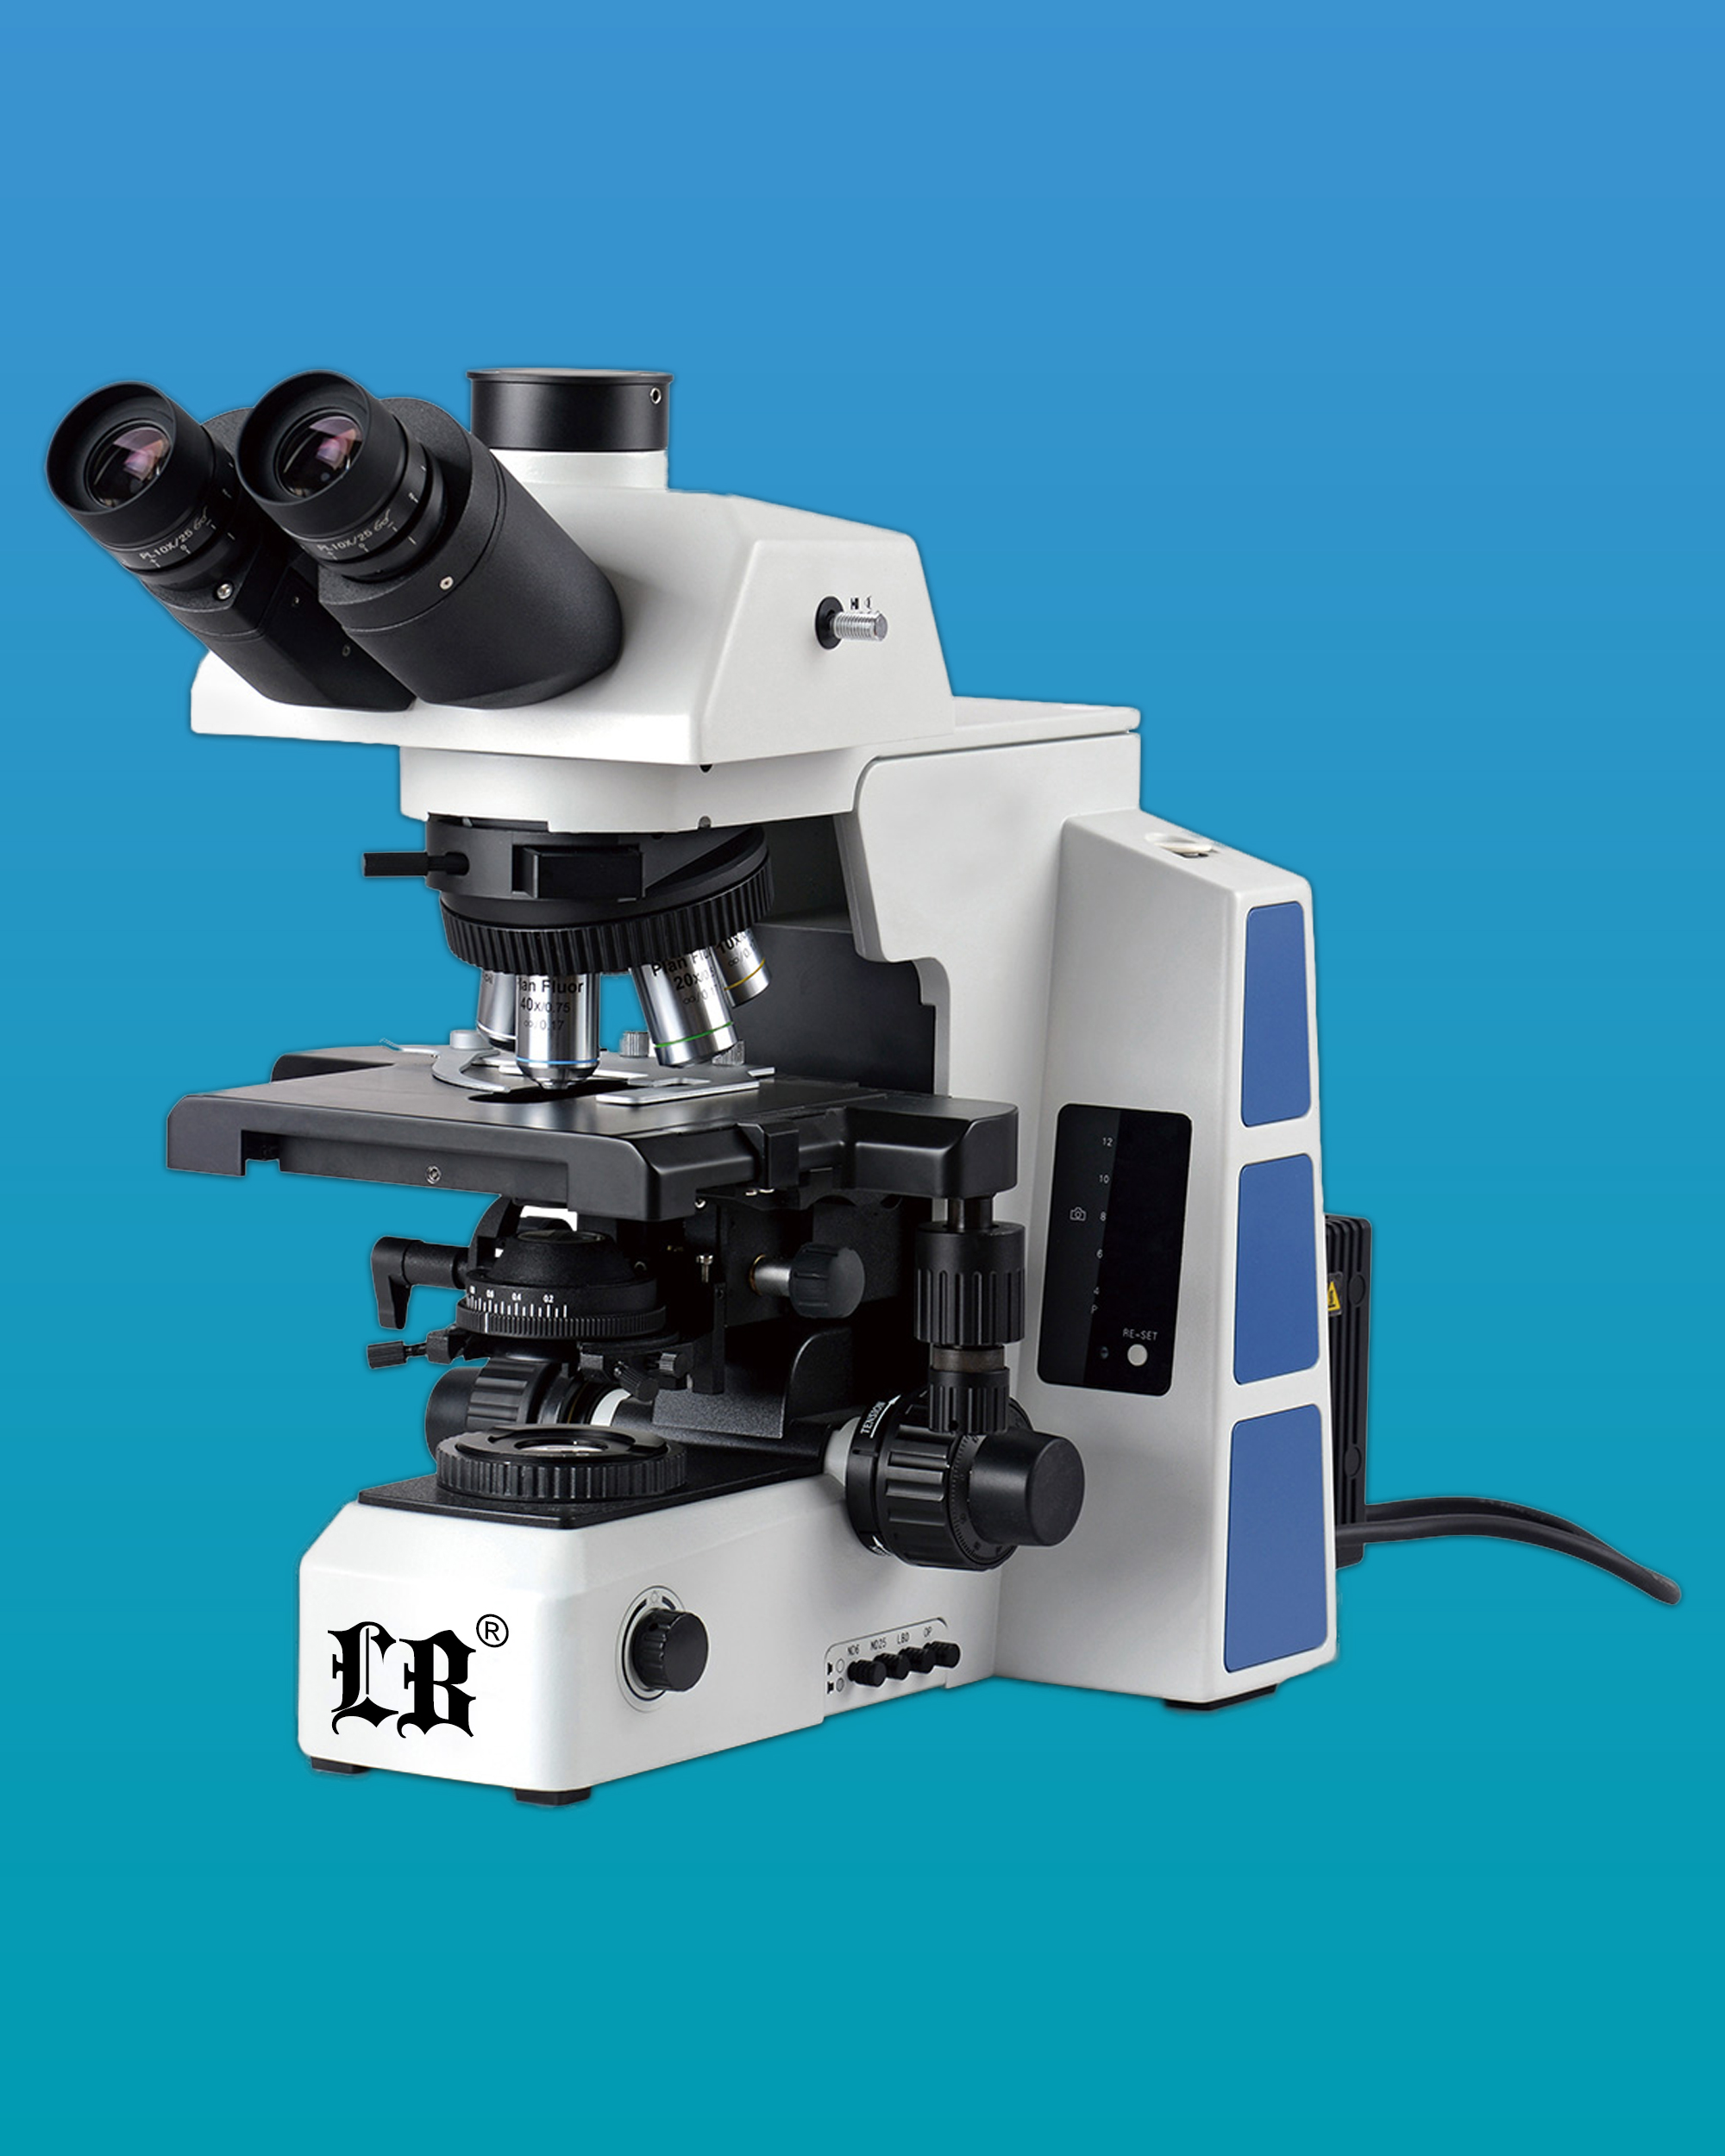 [LB-284] Research Trinocular Biological Microscope w/ Plan Semi-Apochromatic Fluorescent Objectives